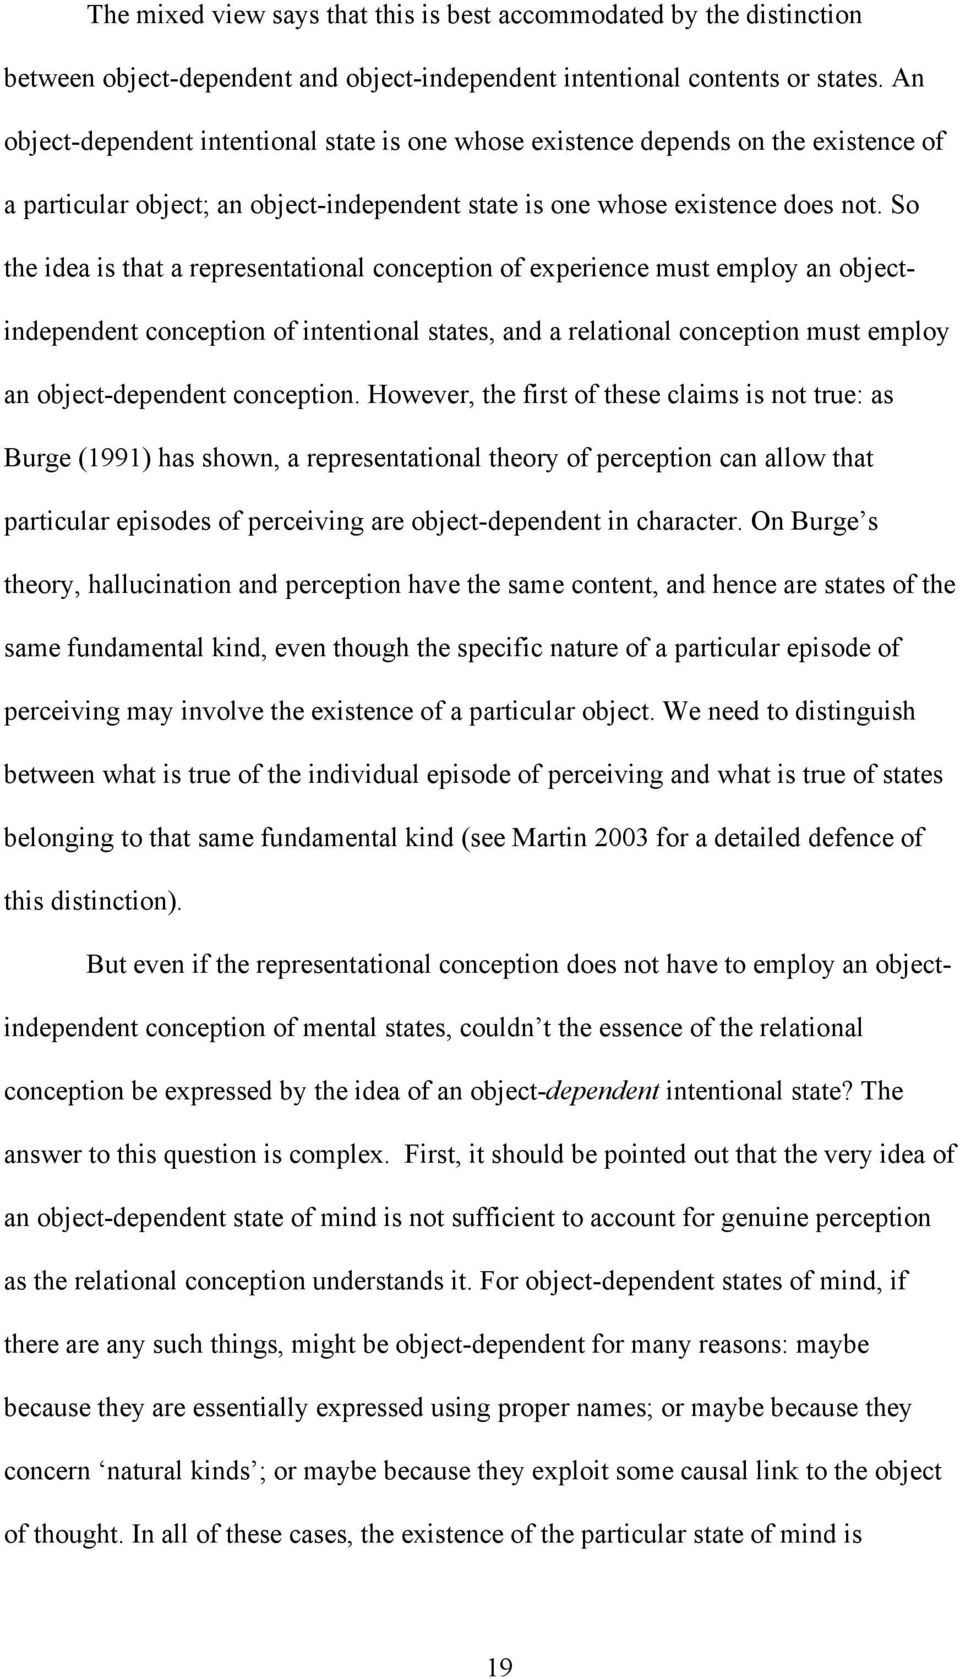 So the idea is that a representational conception of experience must employ an objectindependent conception of intentional states, and a relational conception must employ an object-dependent